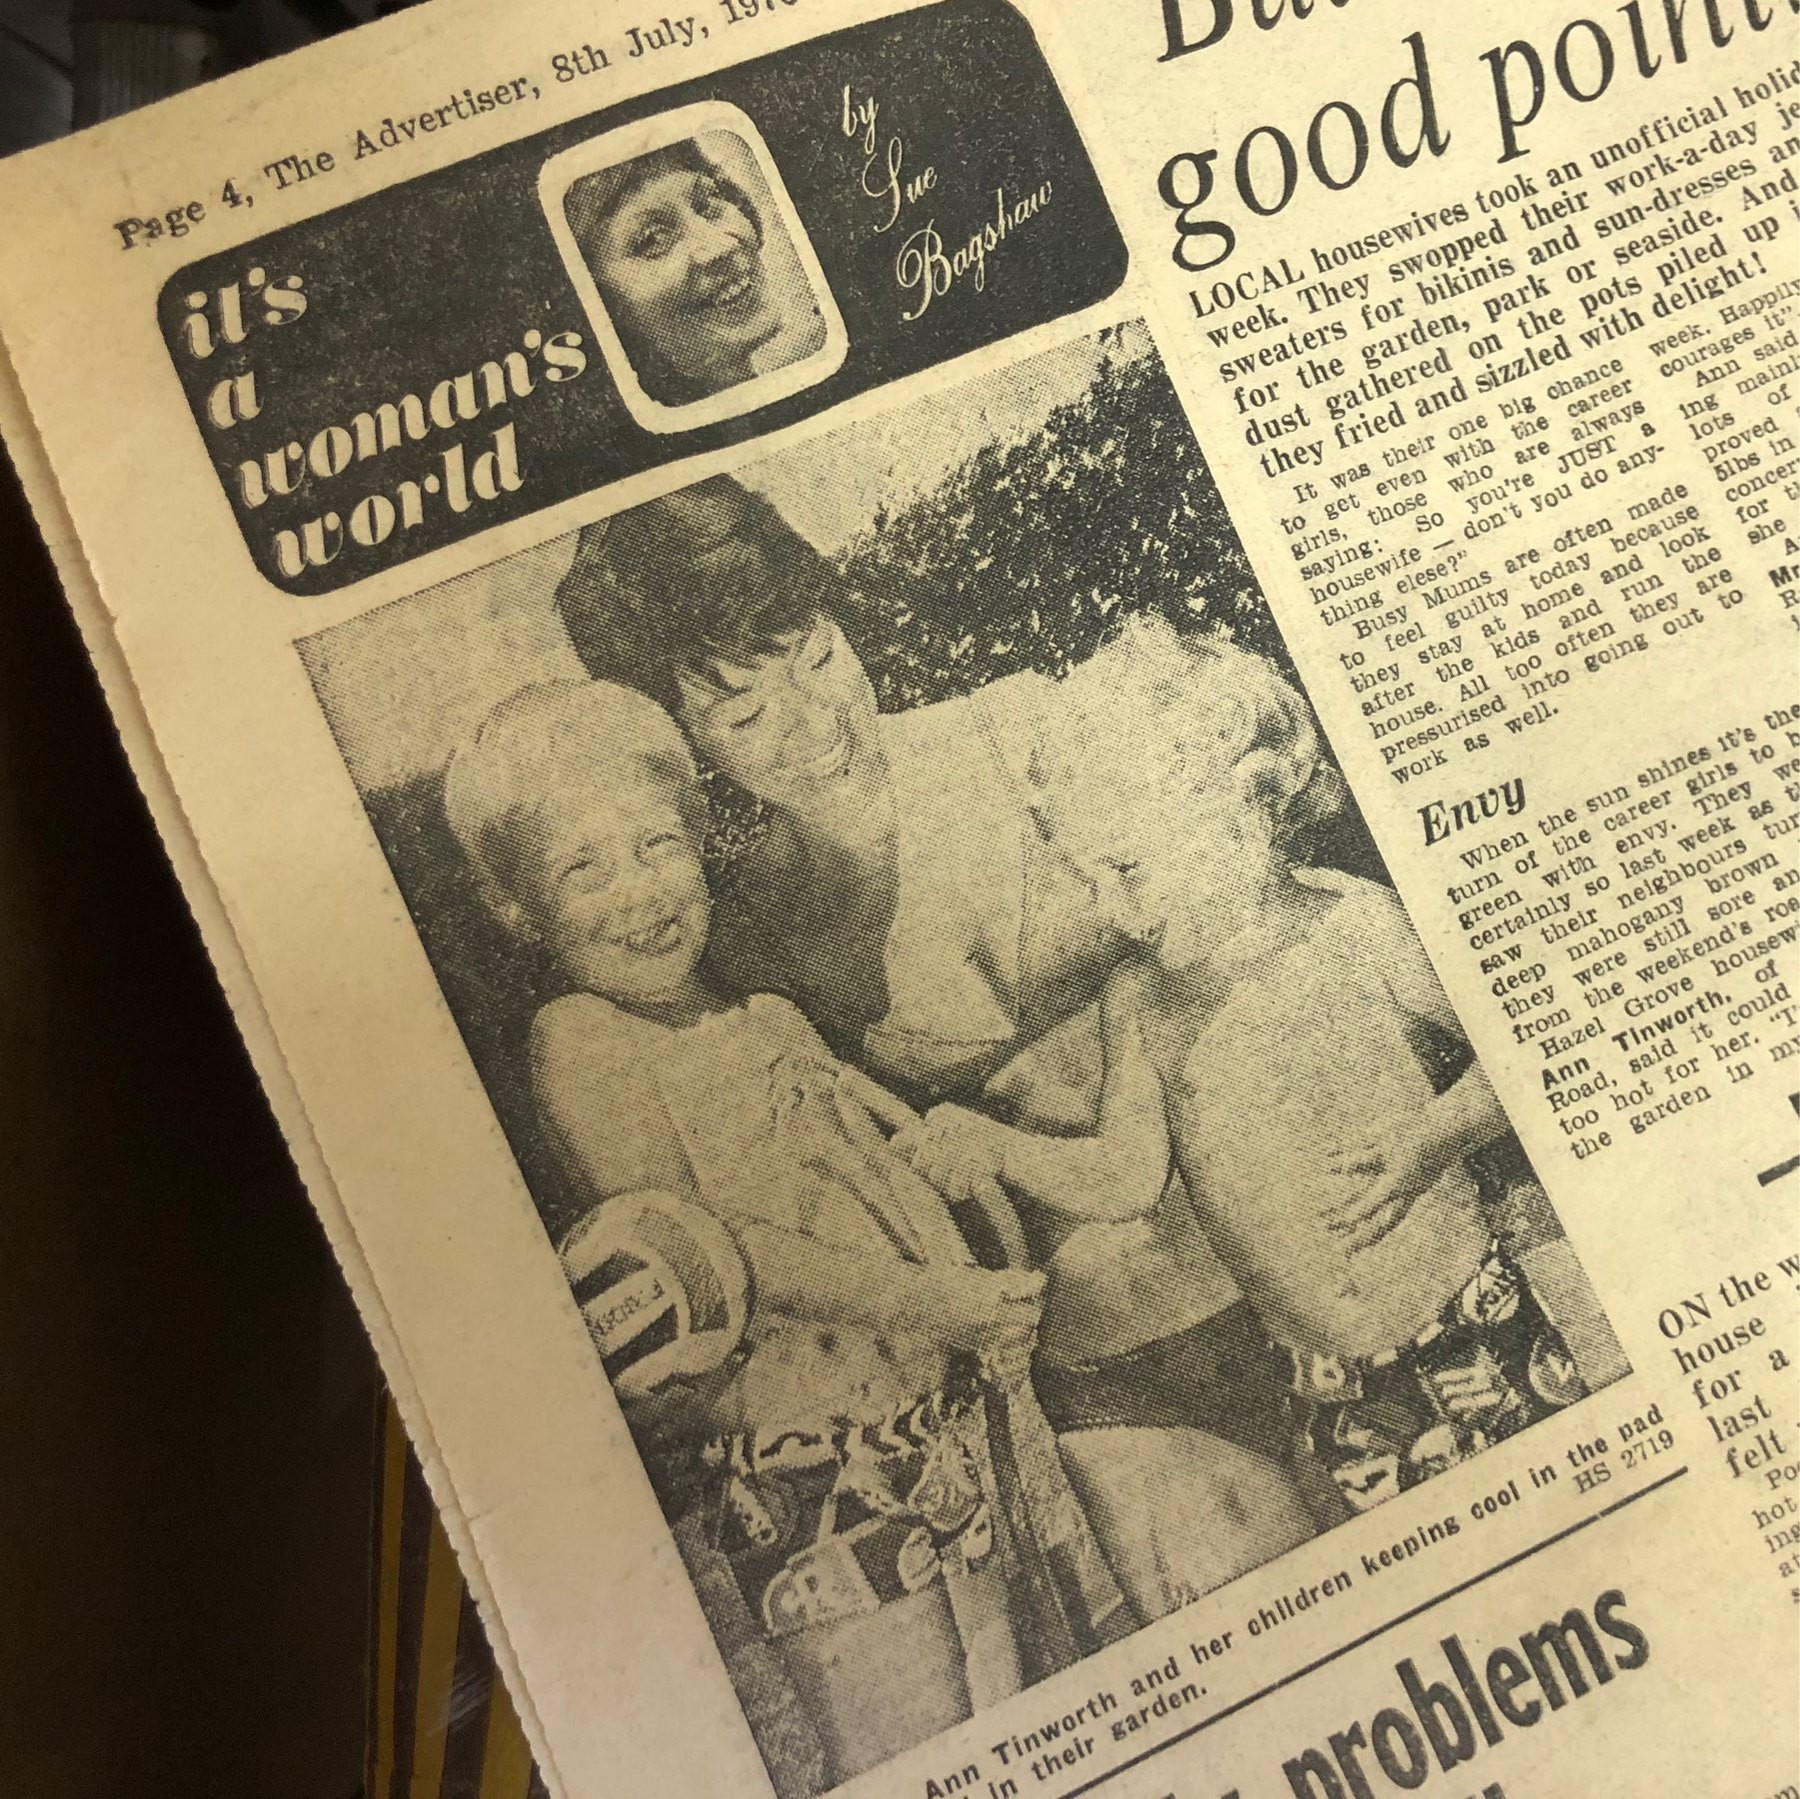 The Tinworth family in the Stockport Advertiser in 1976.